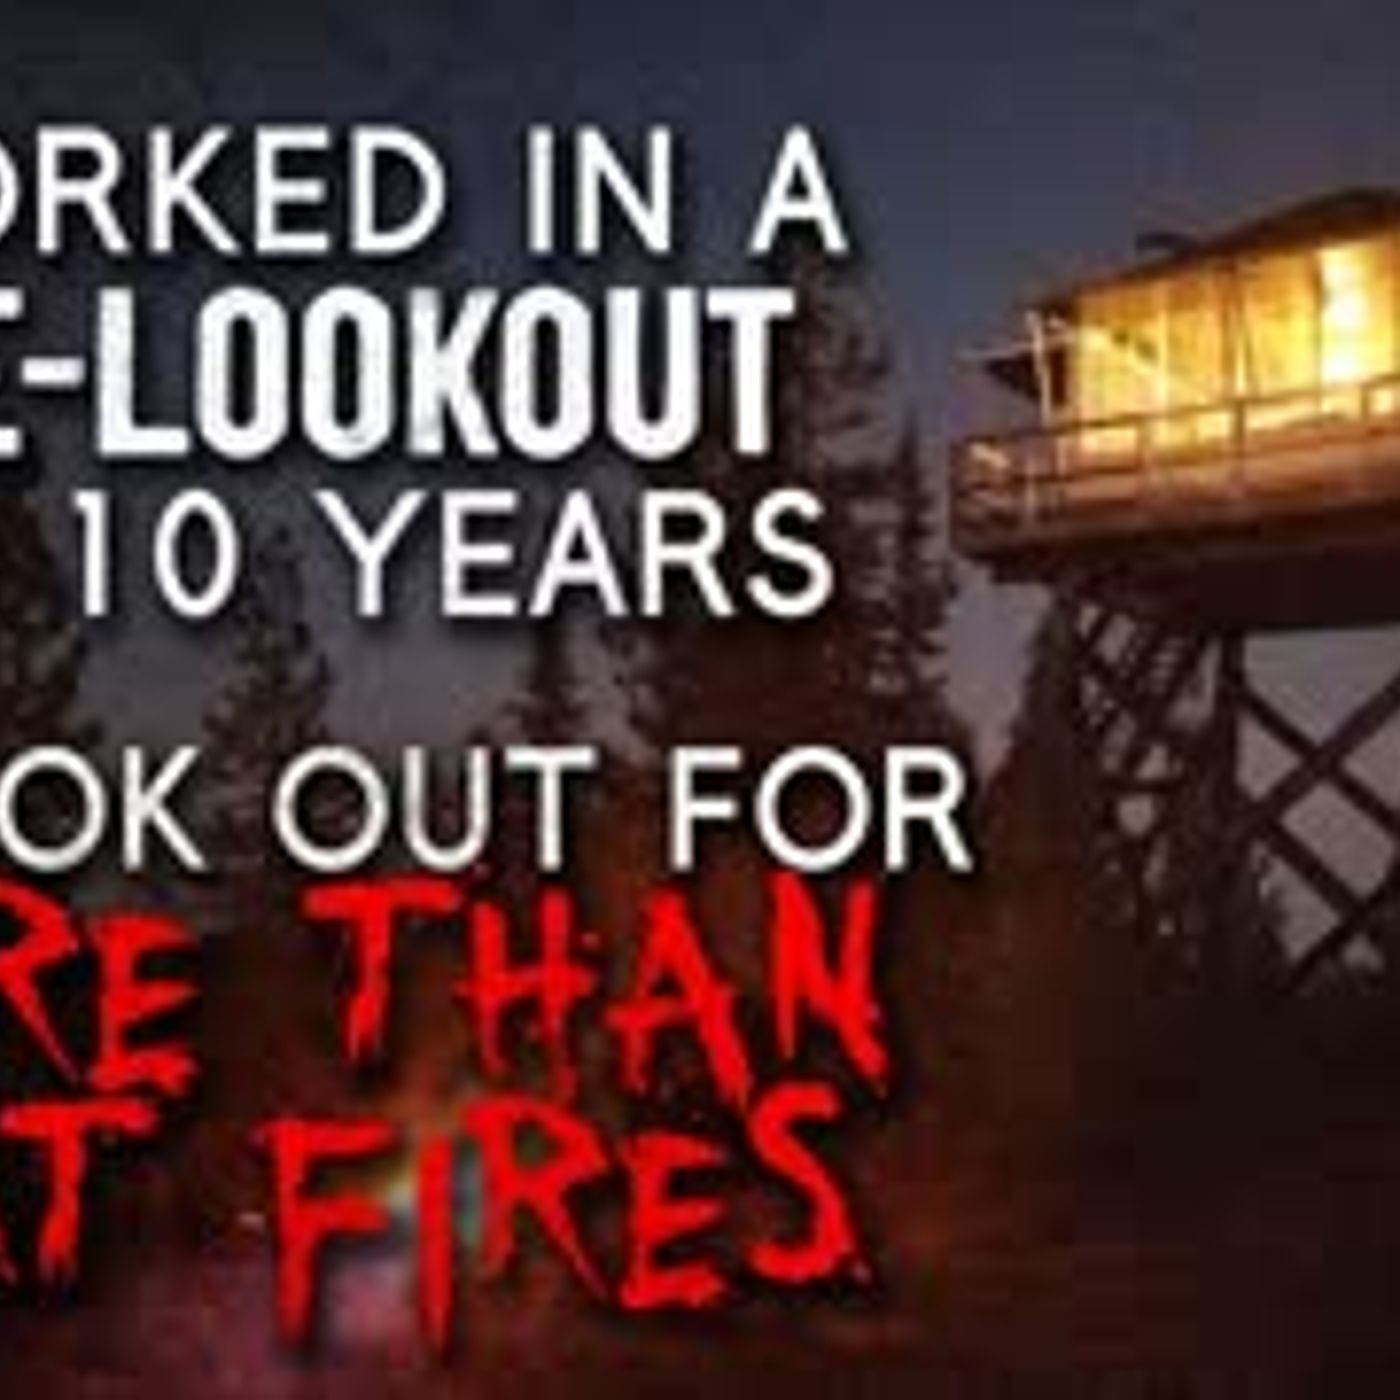 """I Worked in a Fire Lookout for 10 Years. We look out for more than just fires"" Creepypasta"